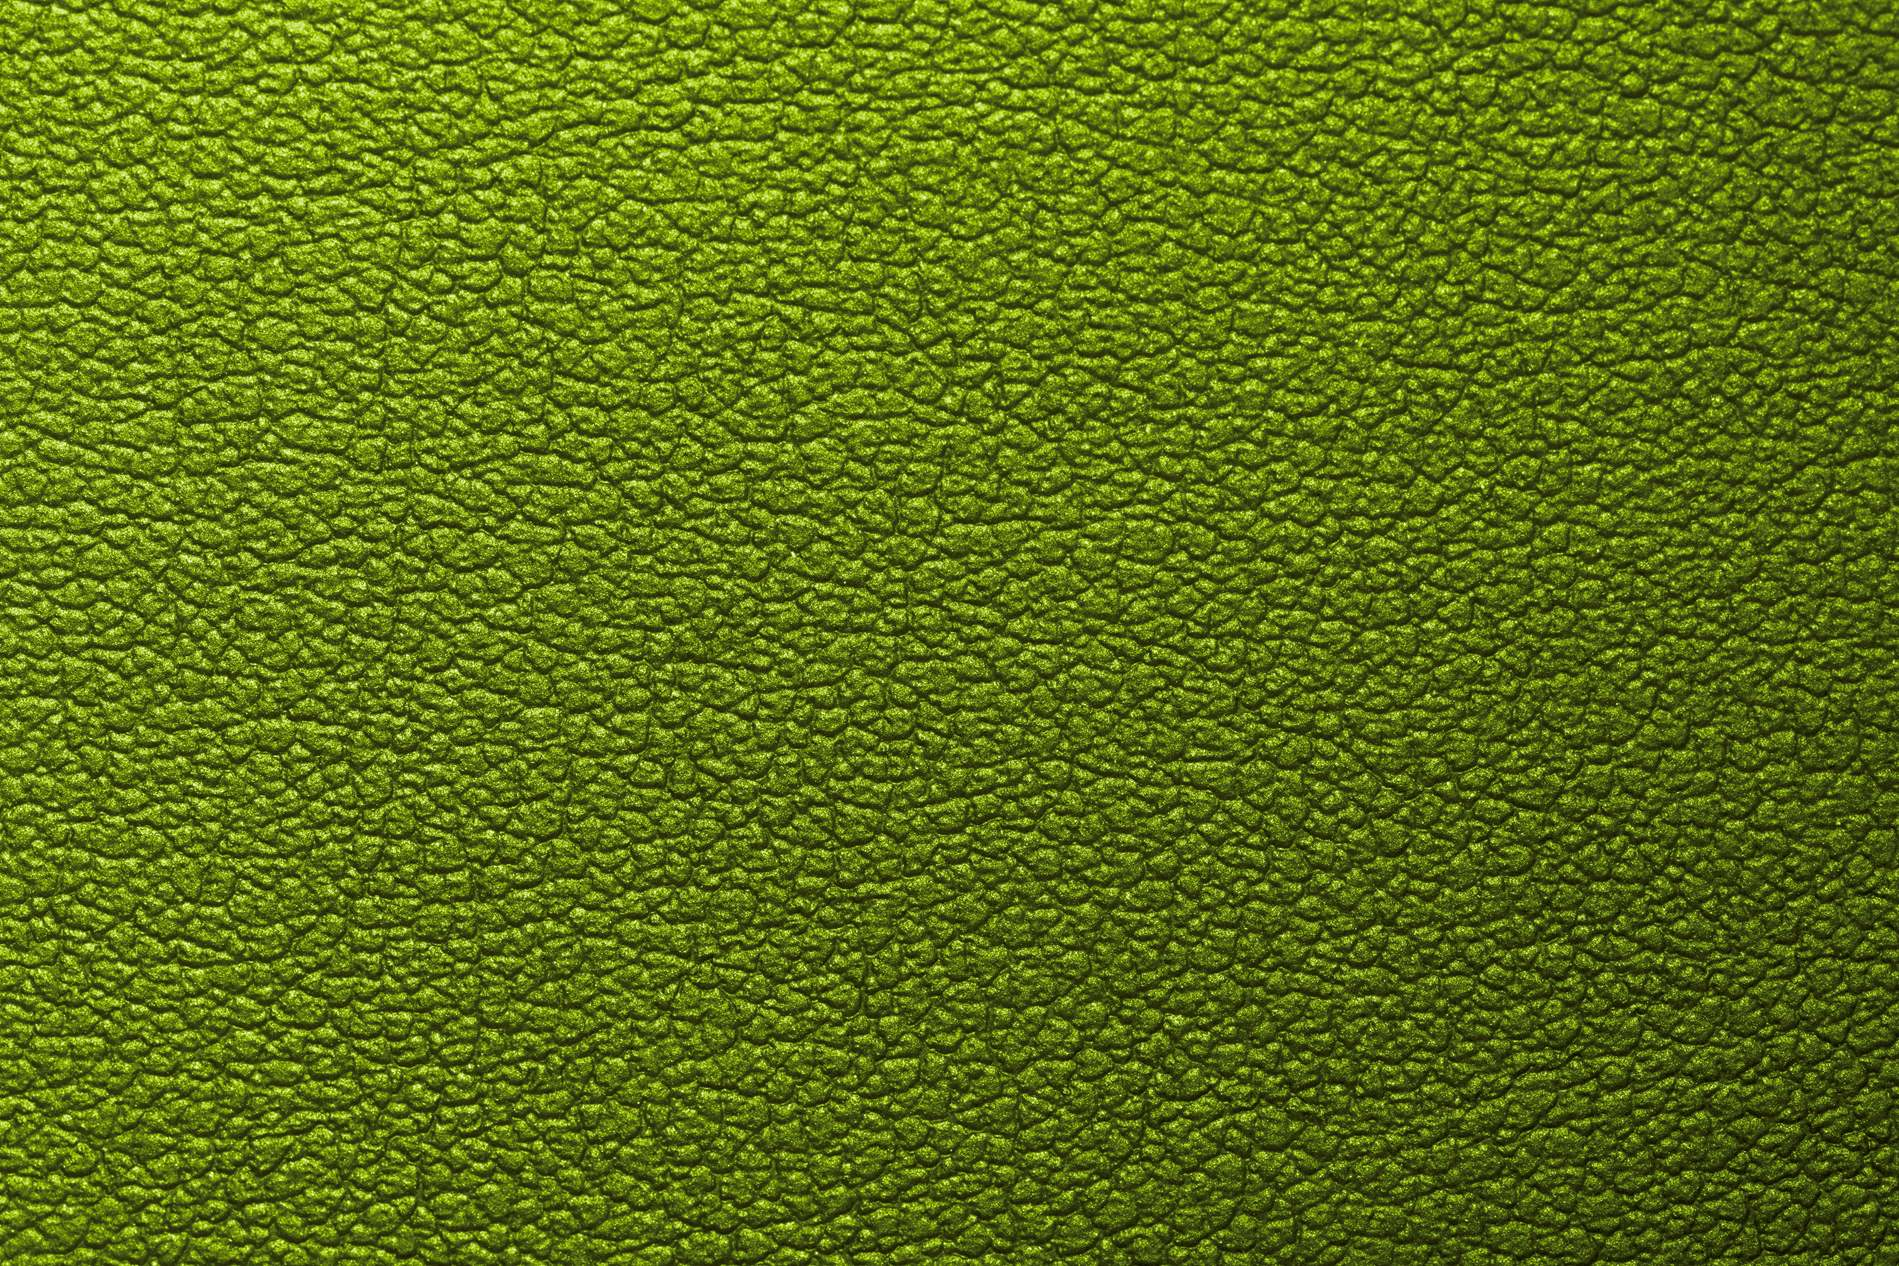 Green Leather Texture Background - PhotoHDX